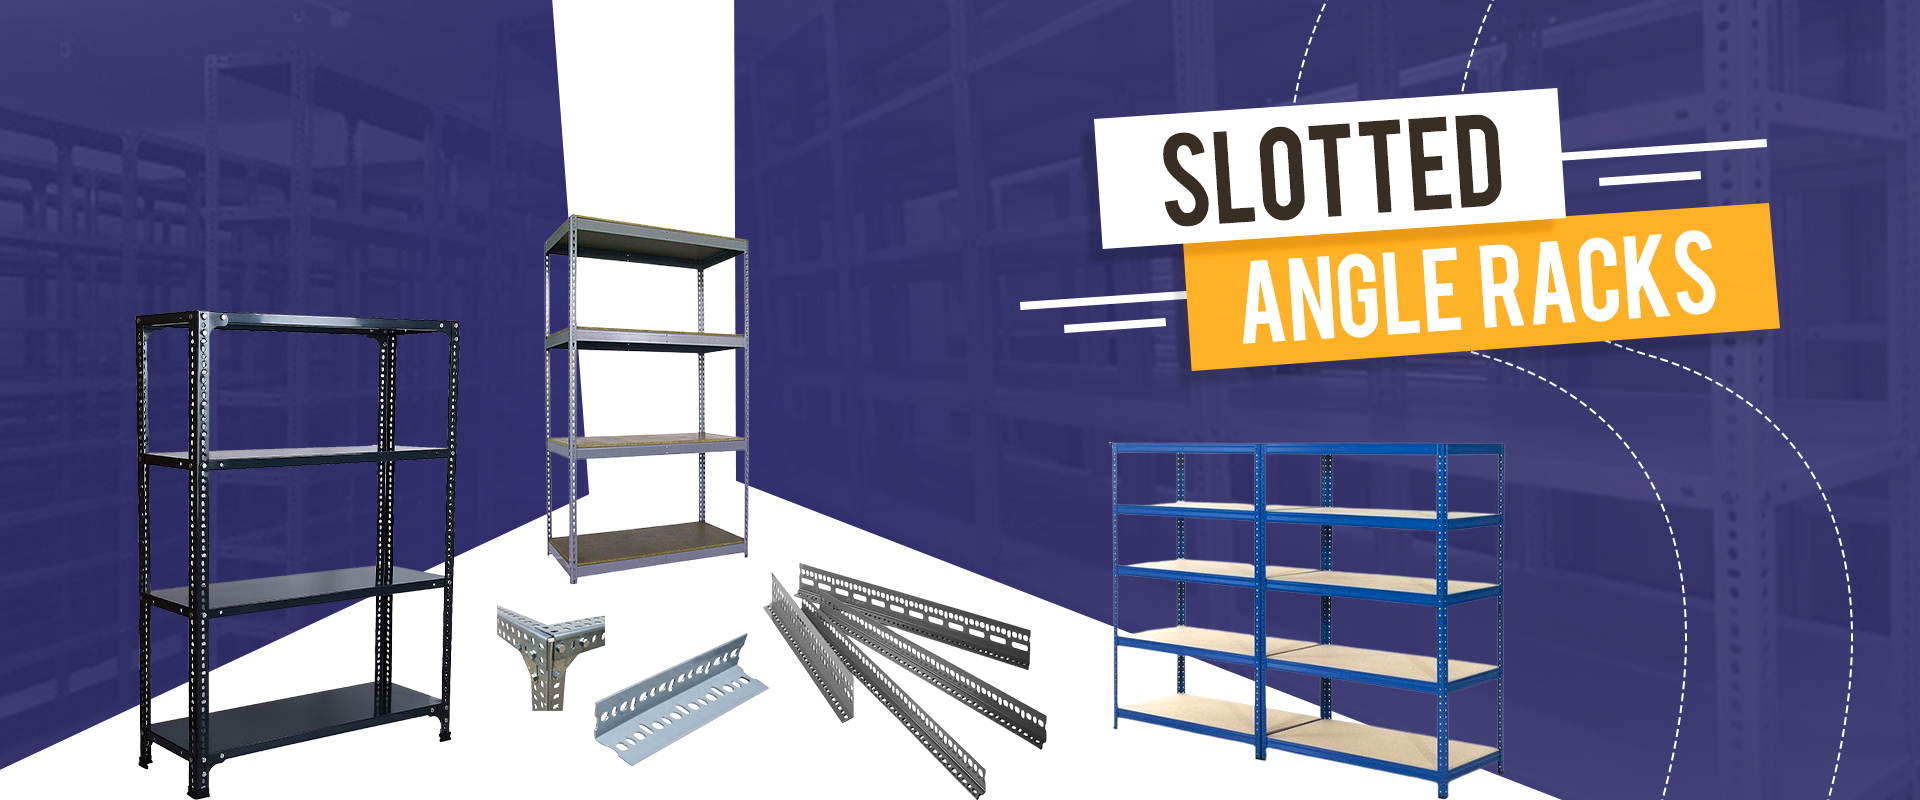 Slotted Angle Racks In Ropar